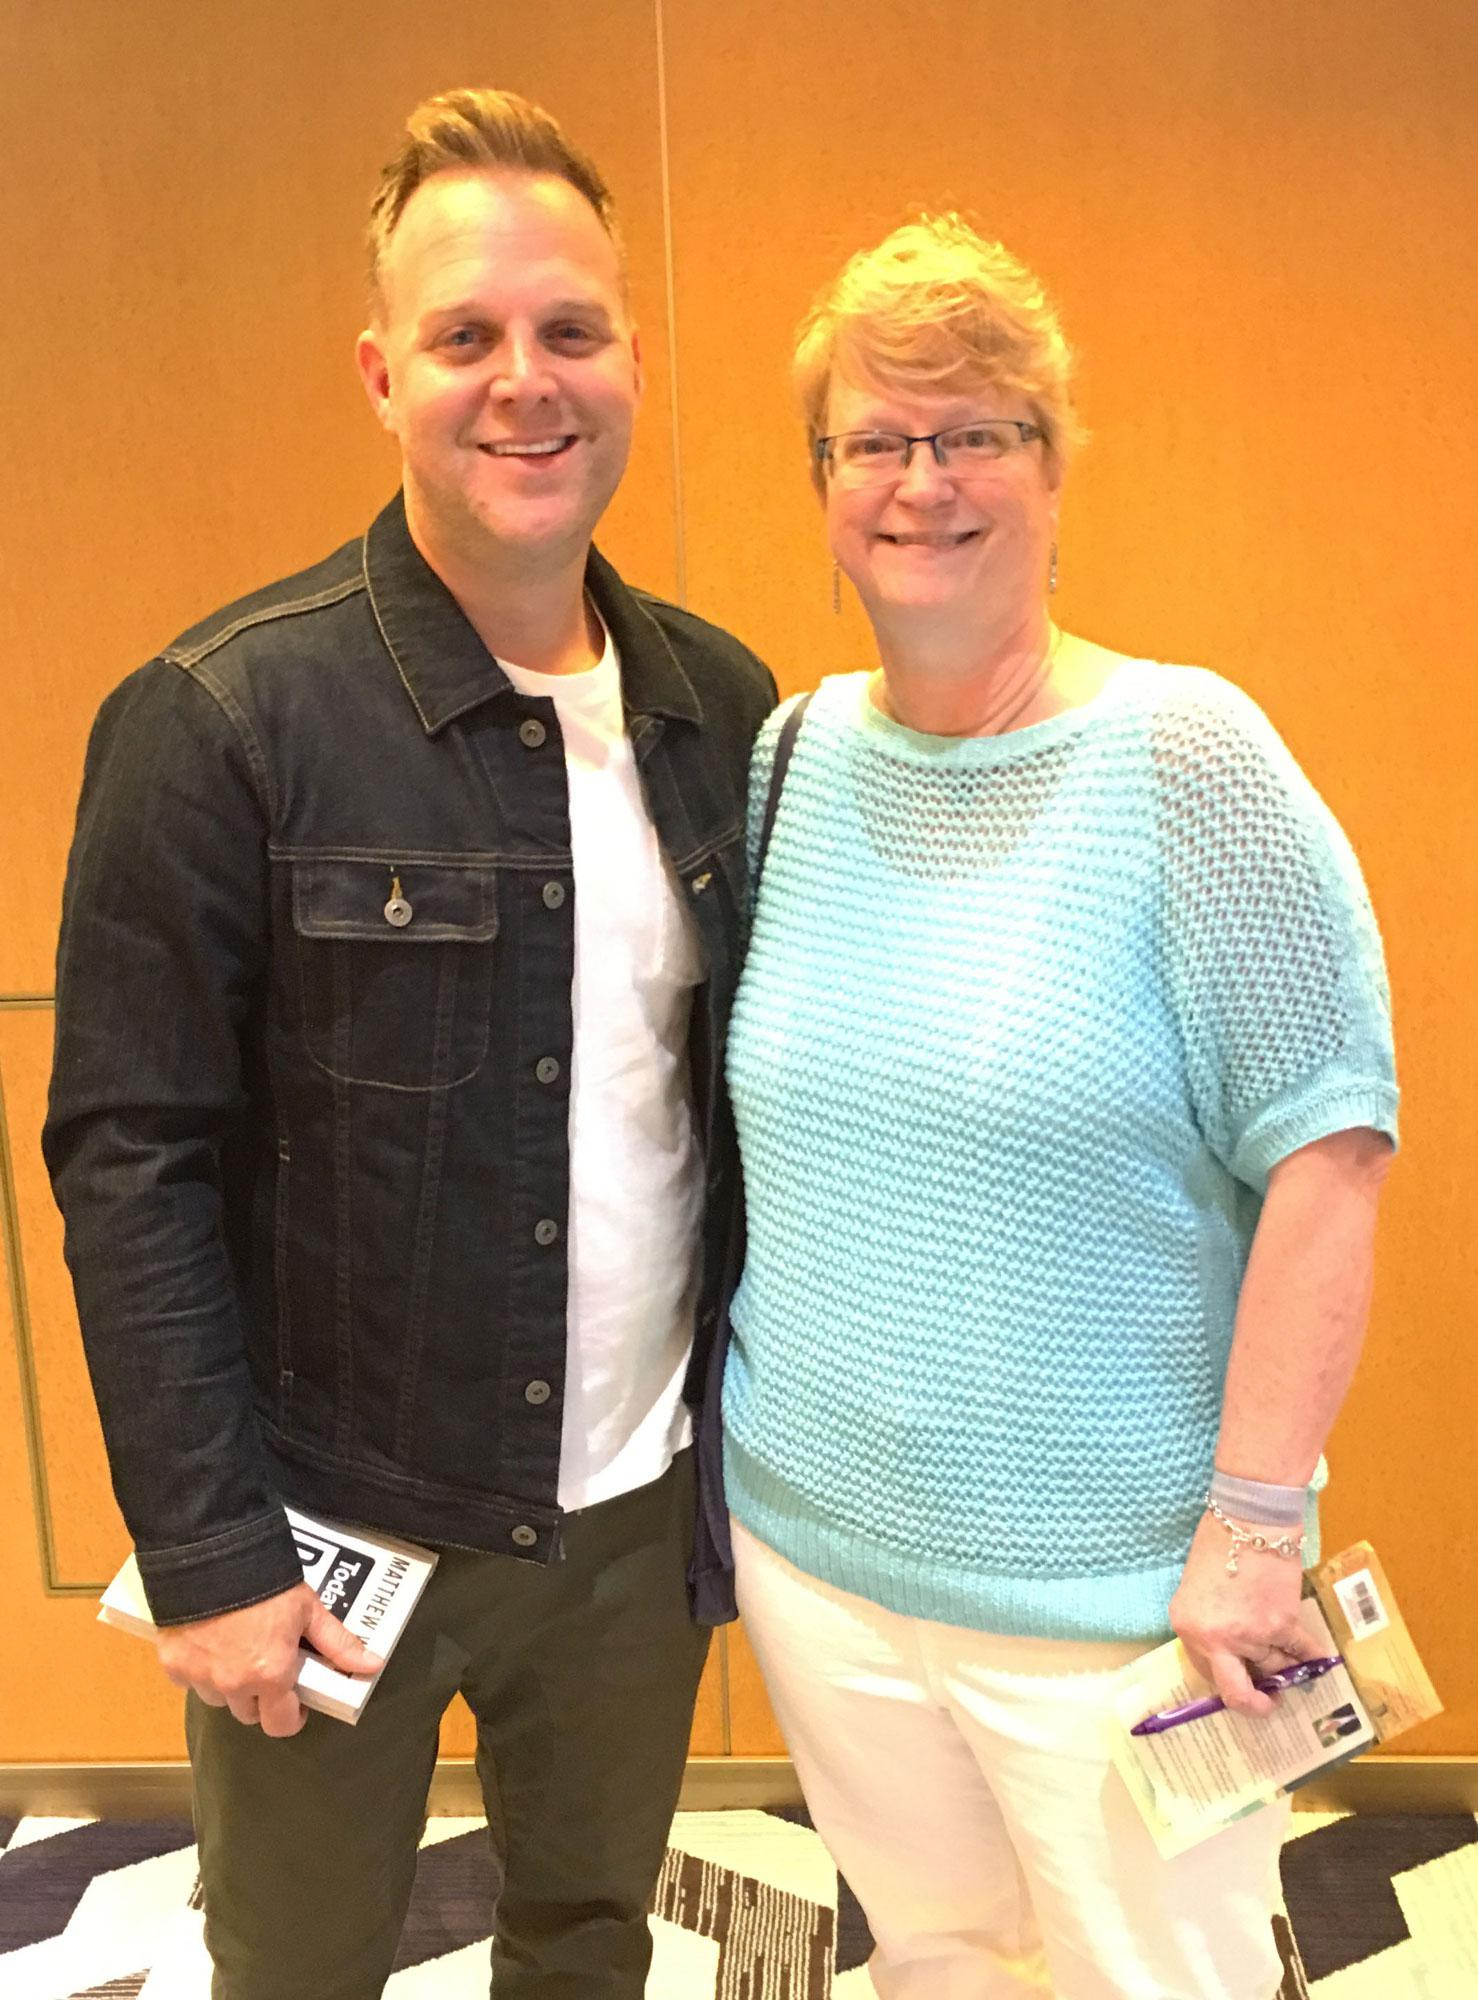 Matthew West with Joana Glass